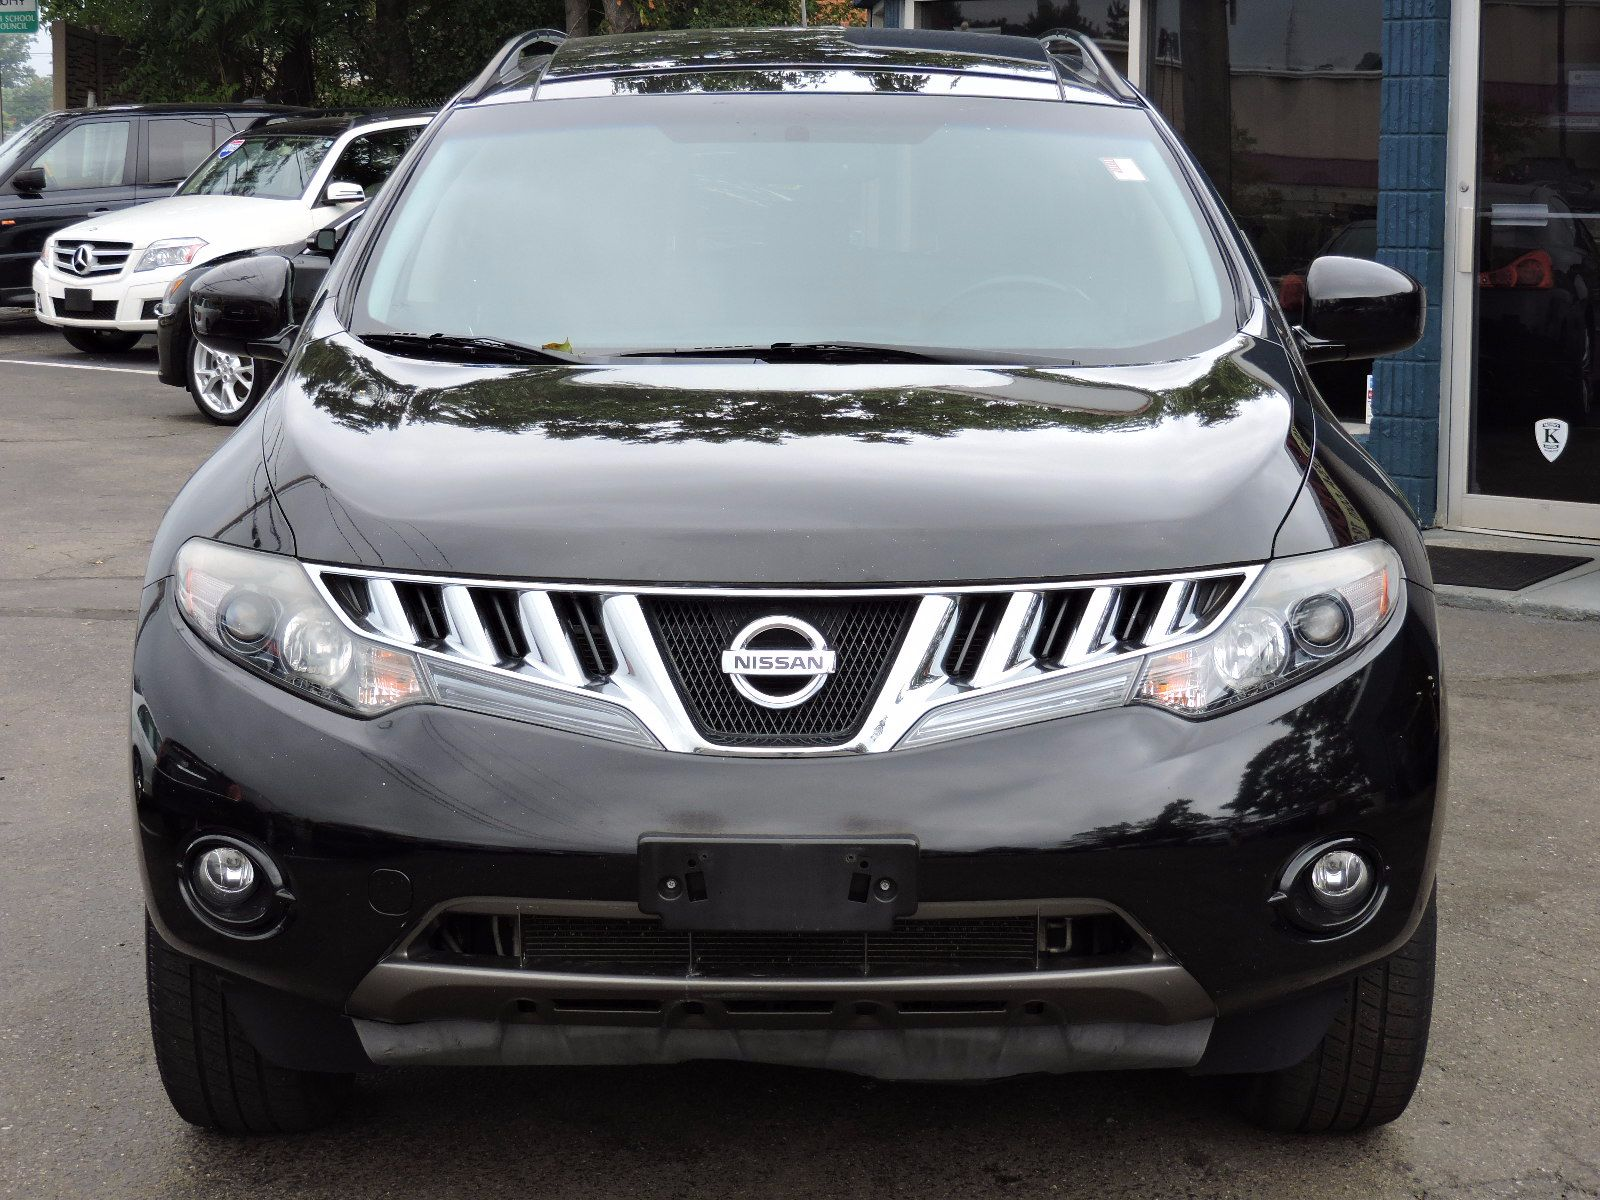 2009 Nissan Murano SL - All Wheel Drive